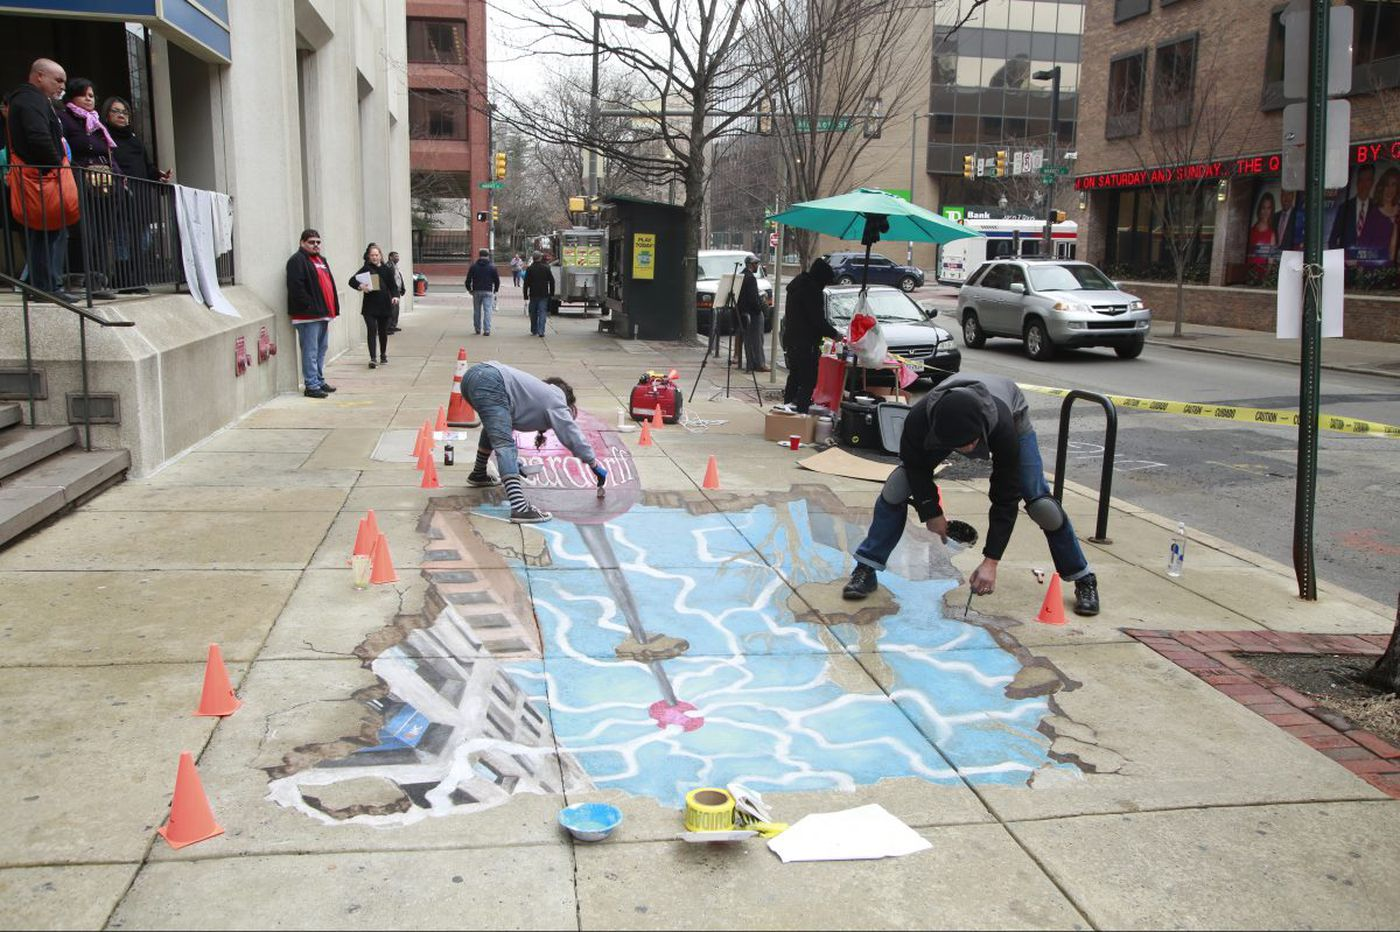 A 3-D chalk mural appears in Old City